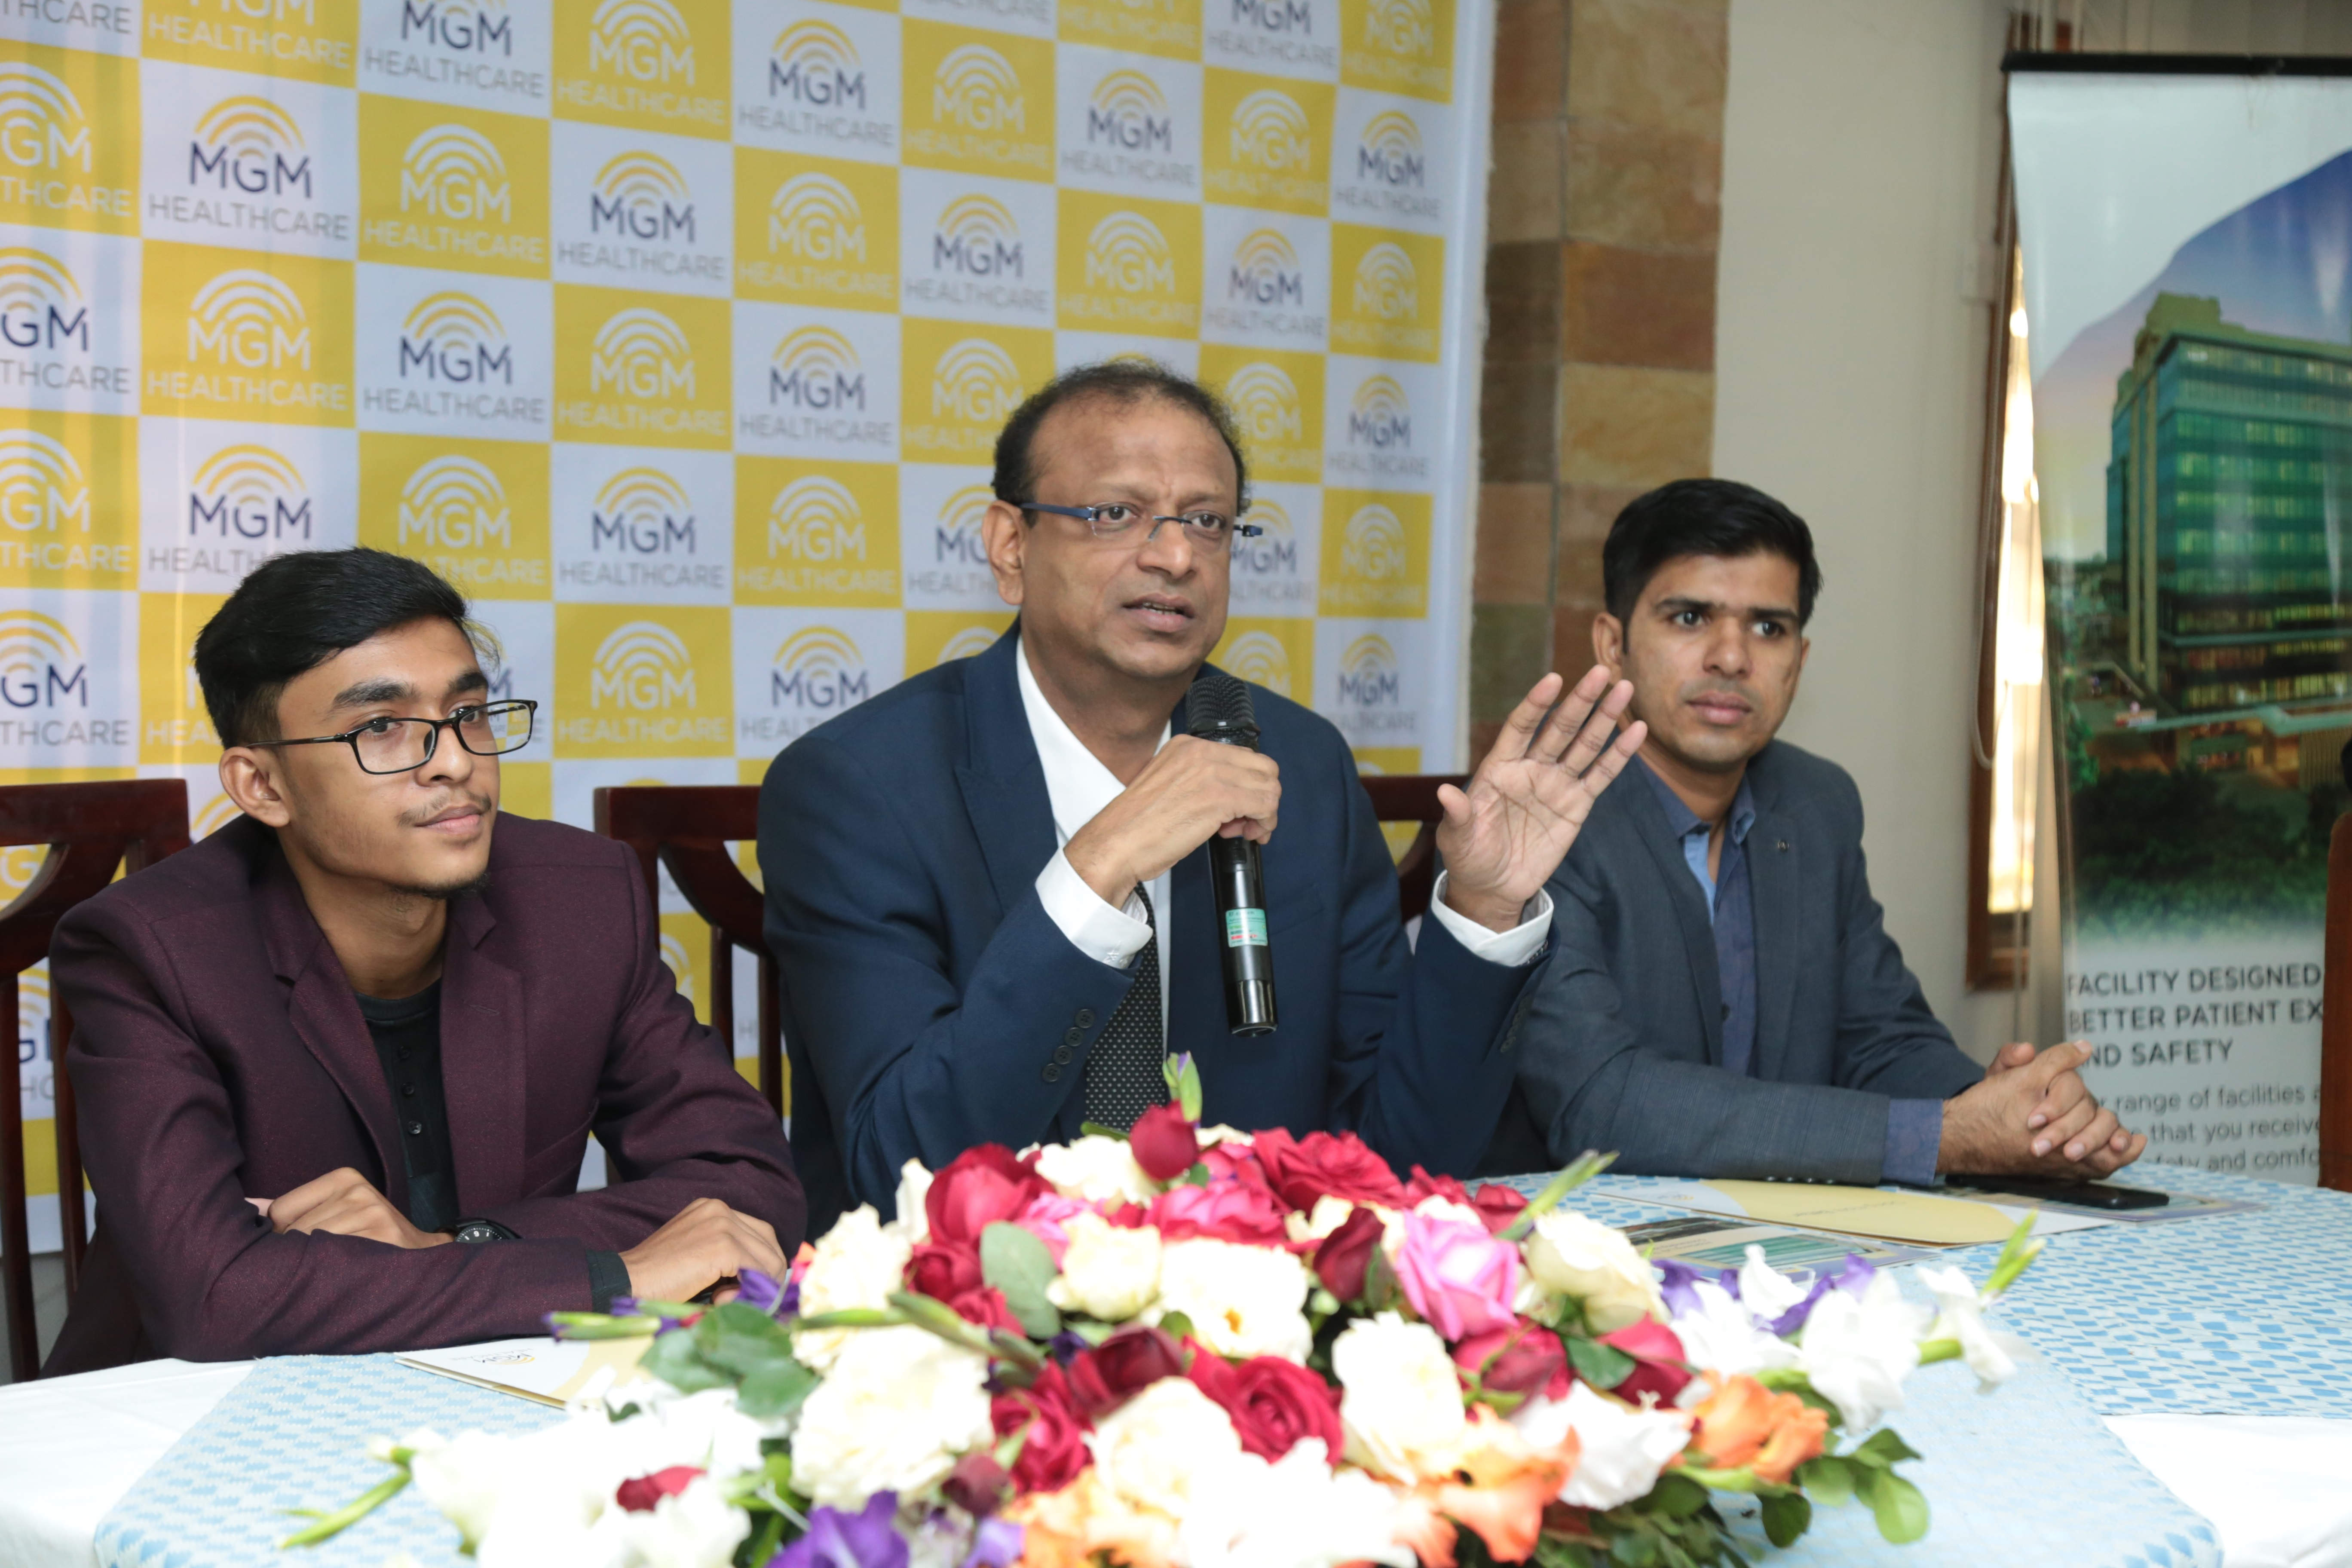 India's eminent ENT and Head-Neck Surgeon Prof Dr. Sanjeev Mohanty's press conference held